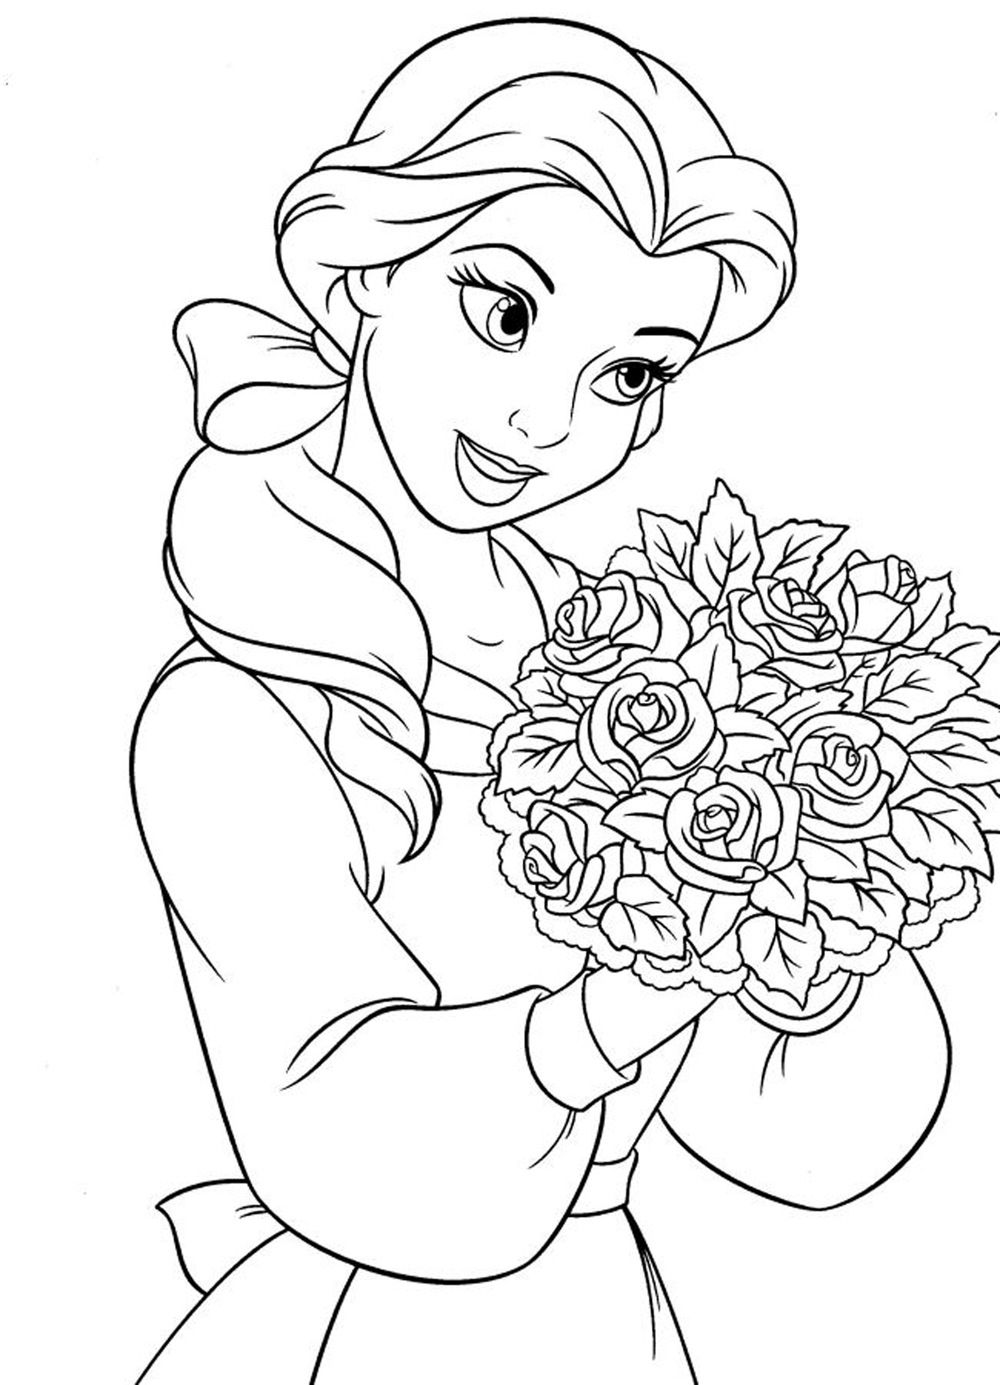 cartoon girls coloring pages girl cartoon characters coloring pages coloring home girls coloring cartoon pages